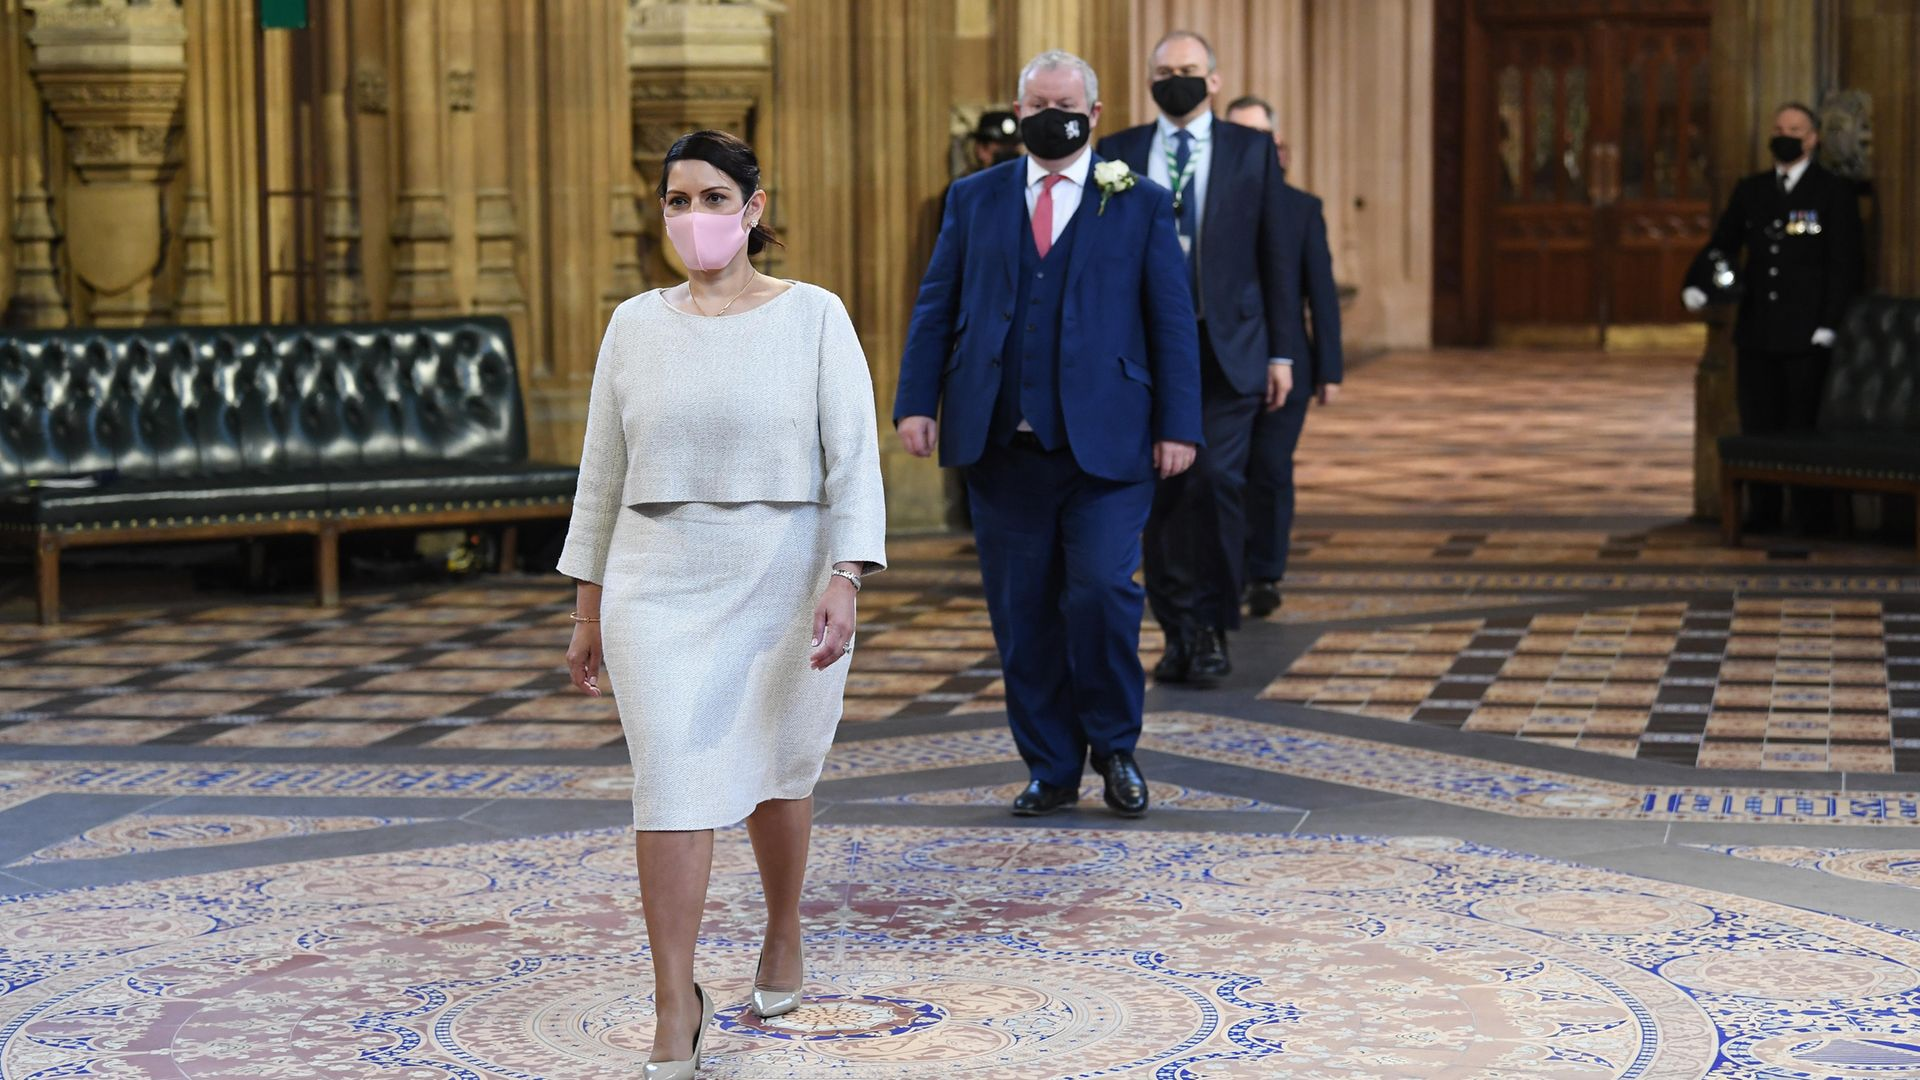 Priti Patel walks through the Central Lobby on the way to listen to the Queen's Speech - Credit: PA